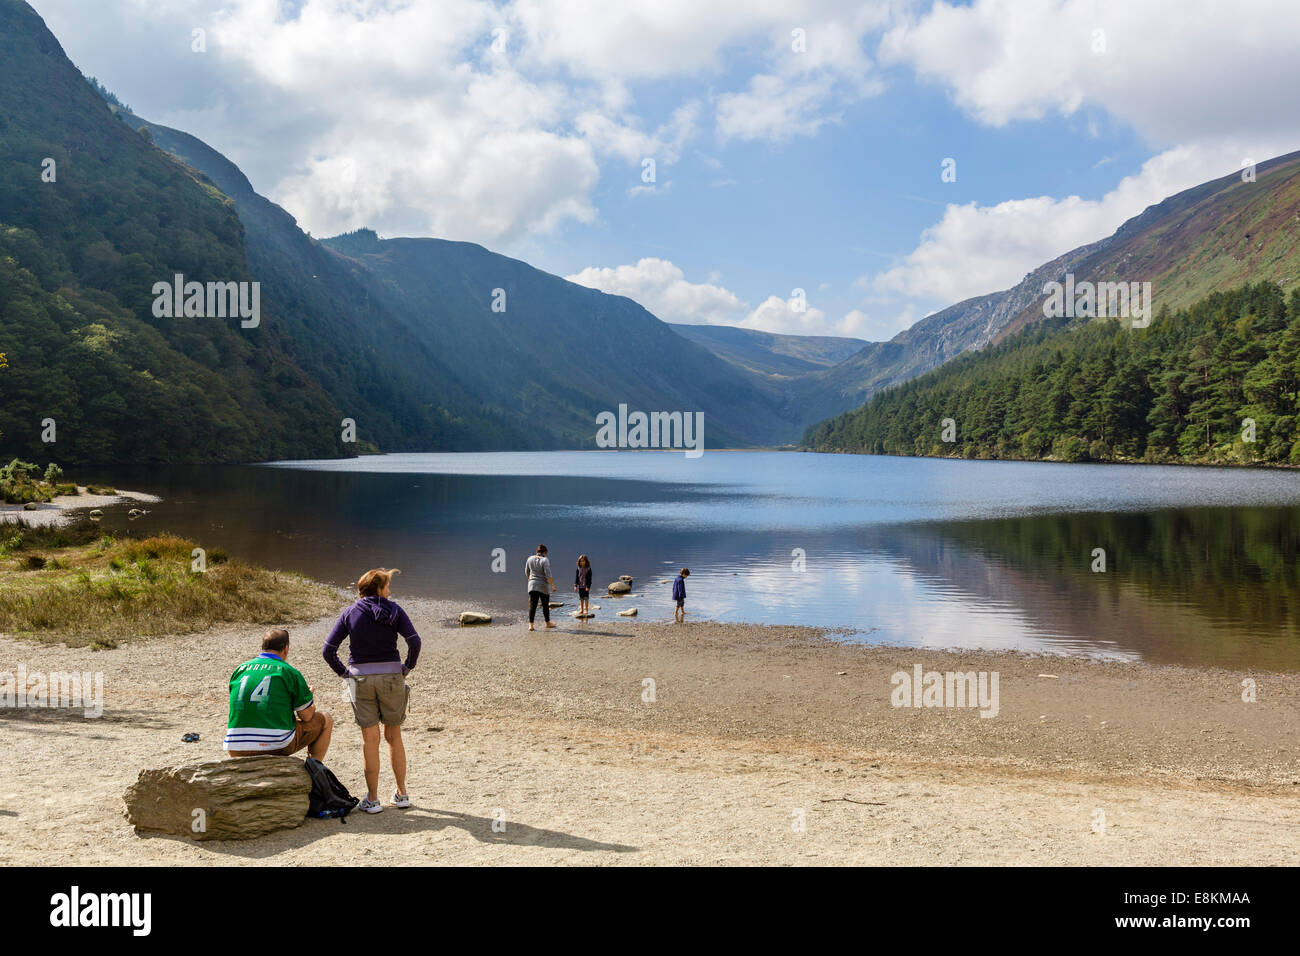 Family on the shores of the Upper Lake at the old monastic settlement of Glendalough, County Wicklow, Republic of - Stock Image